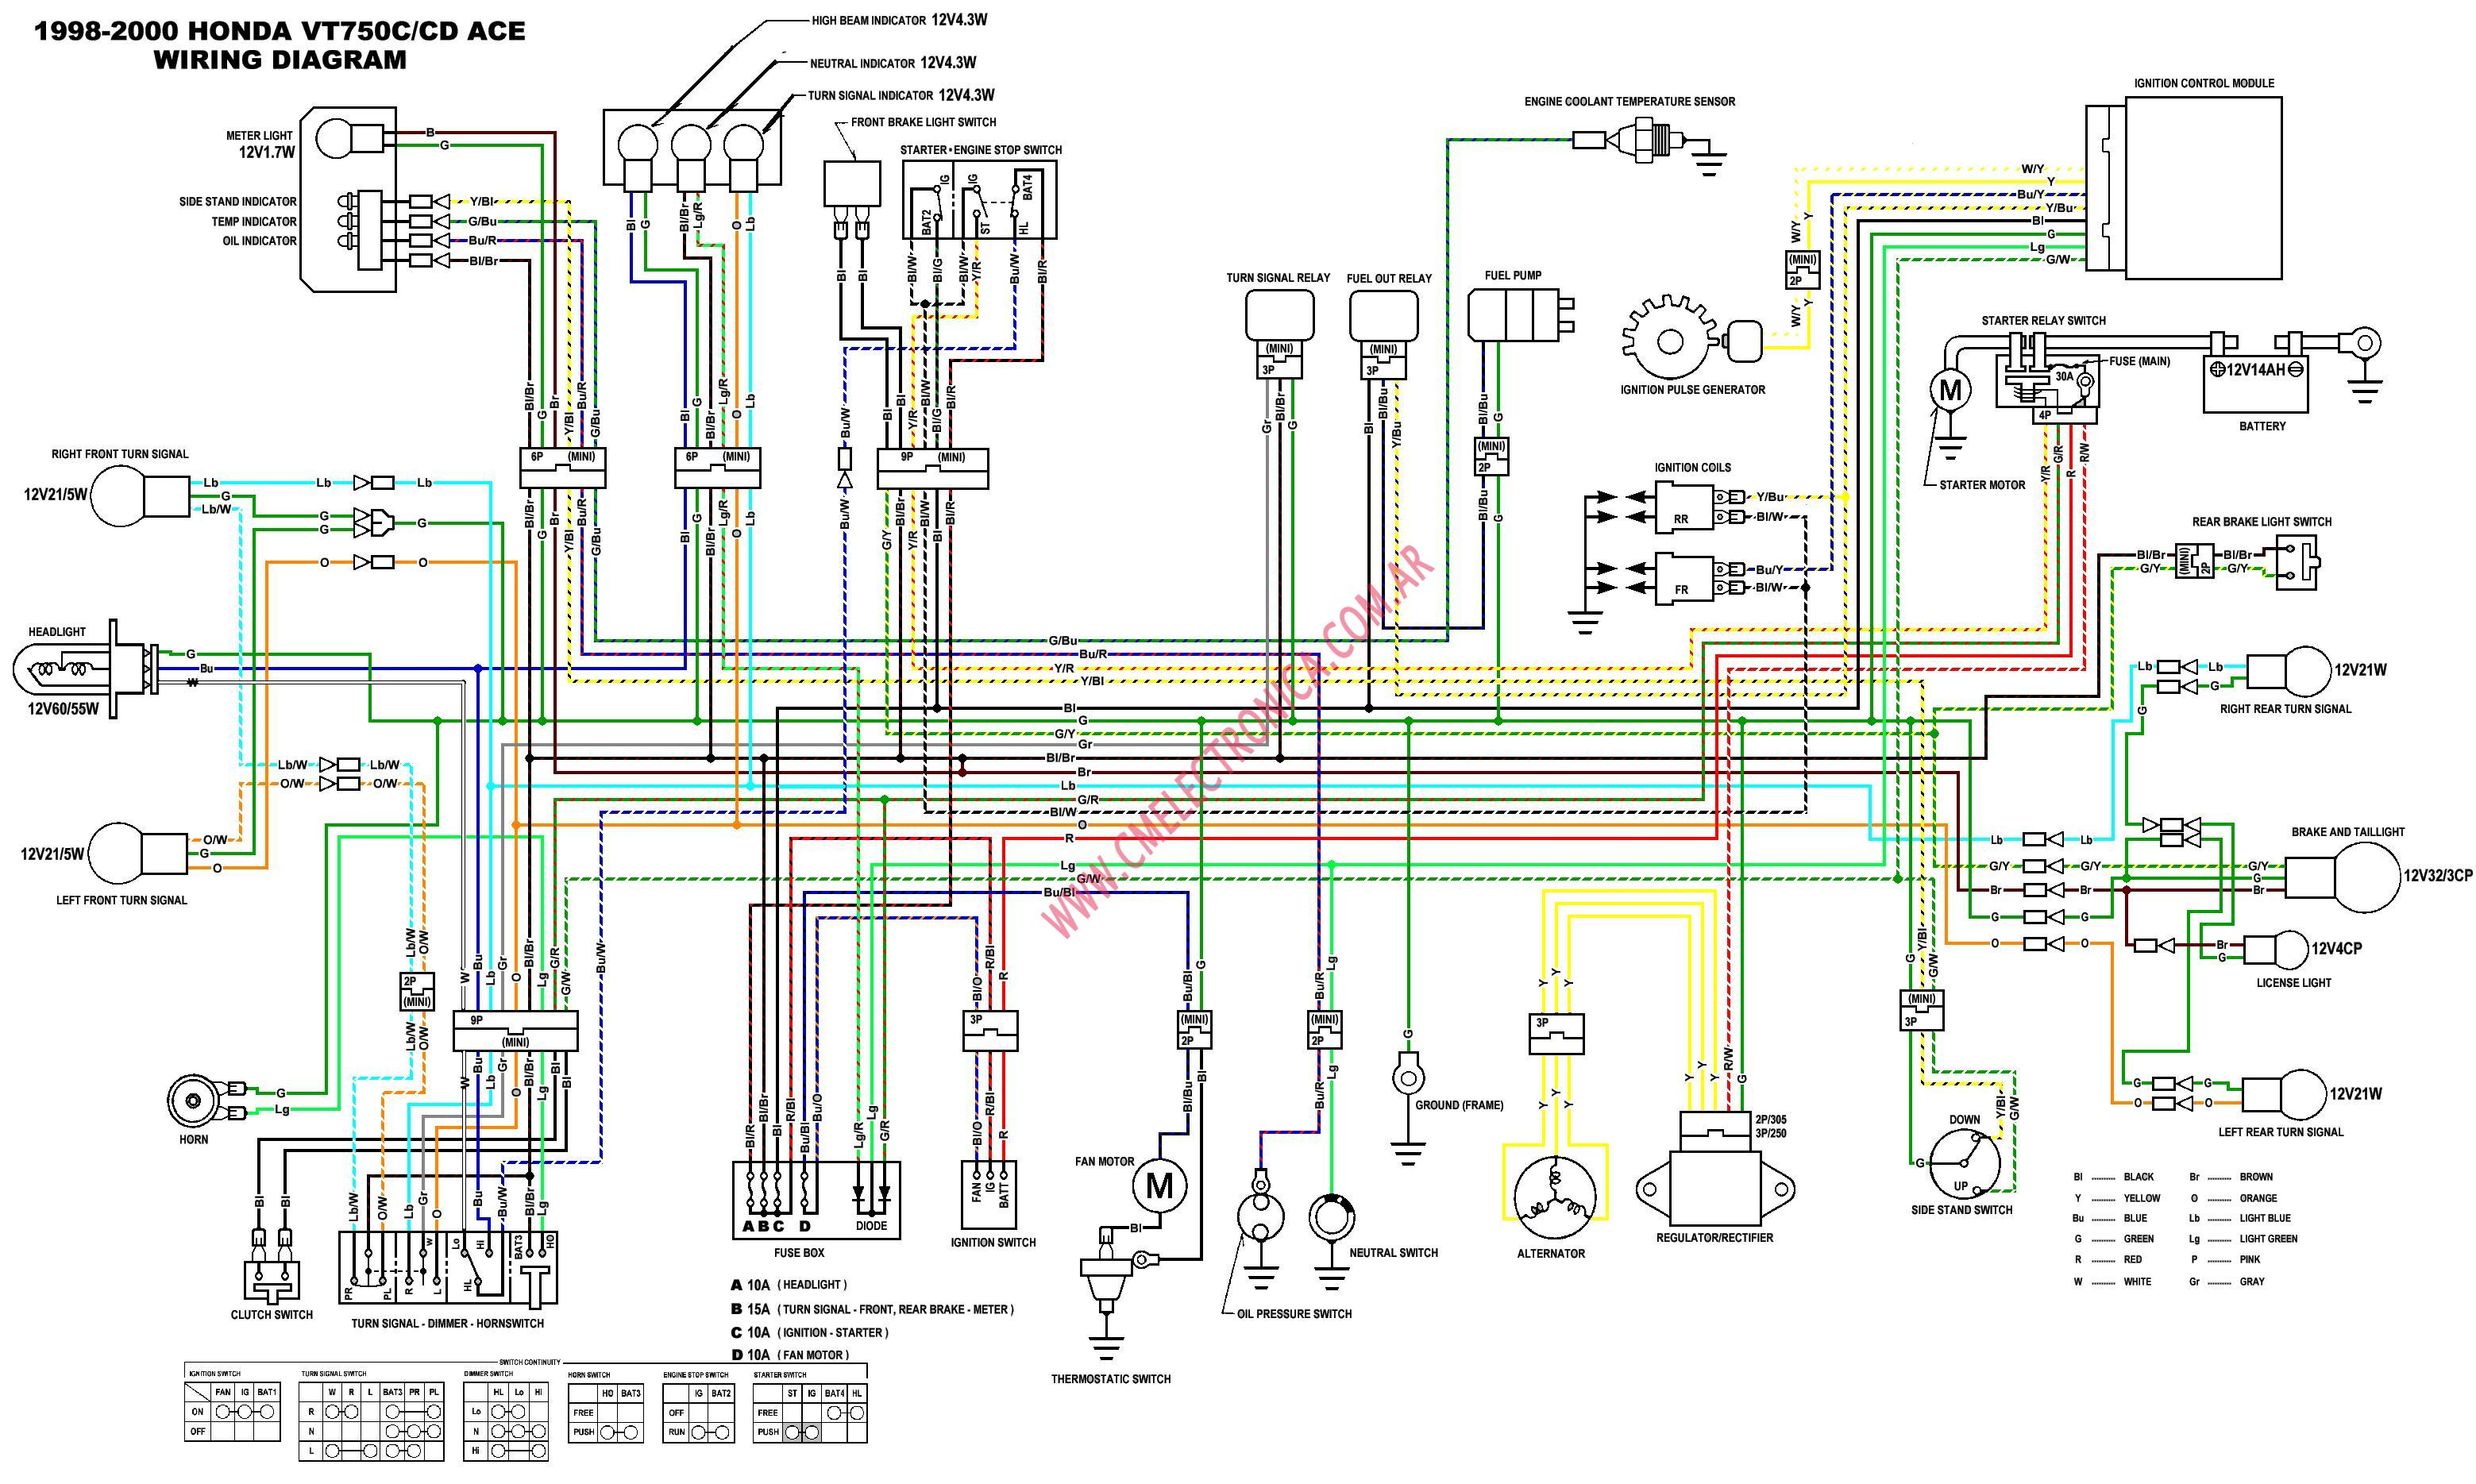 1999 Honda Accord Wiring Schematics Archive Of Automotive Diagram 2007 Rh Caltech Ctp Com Ac Headlight